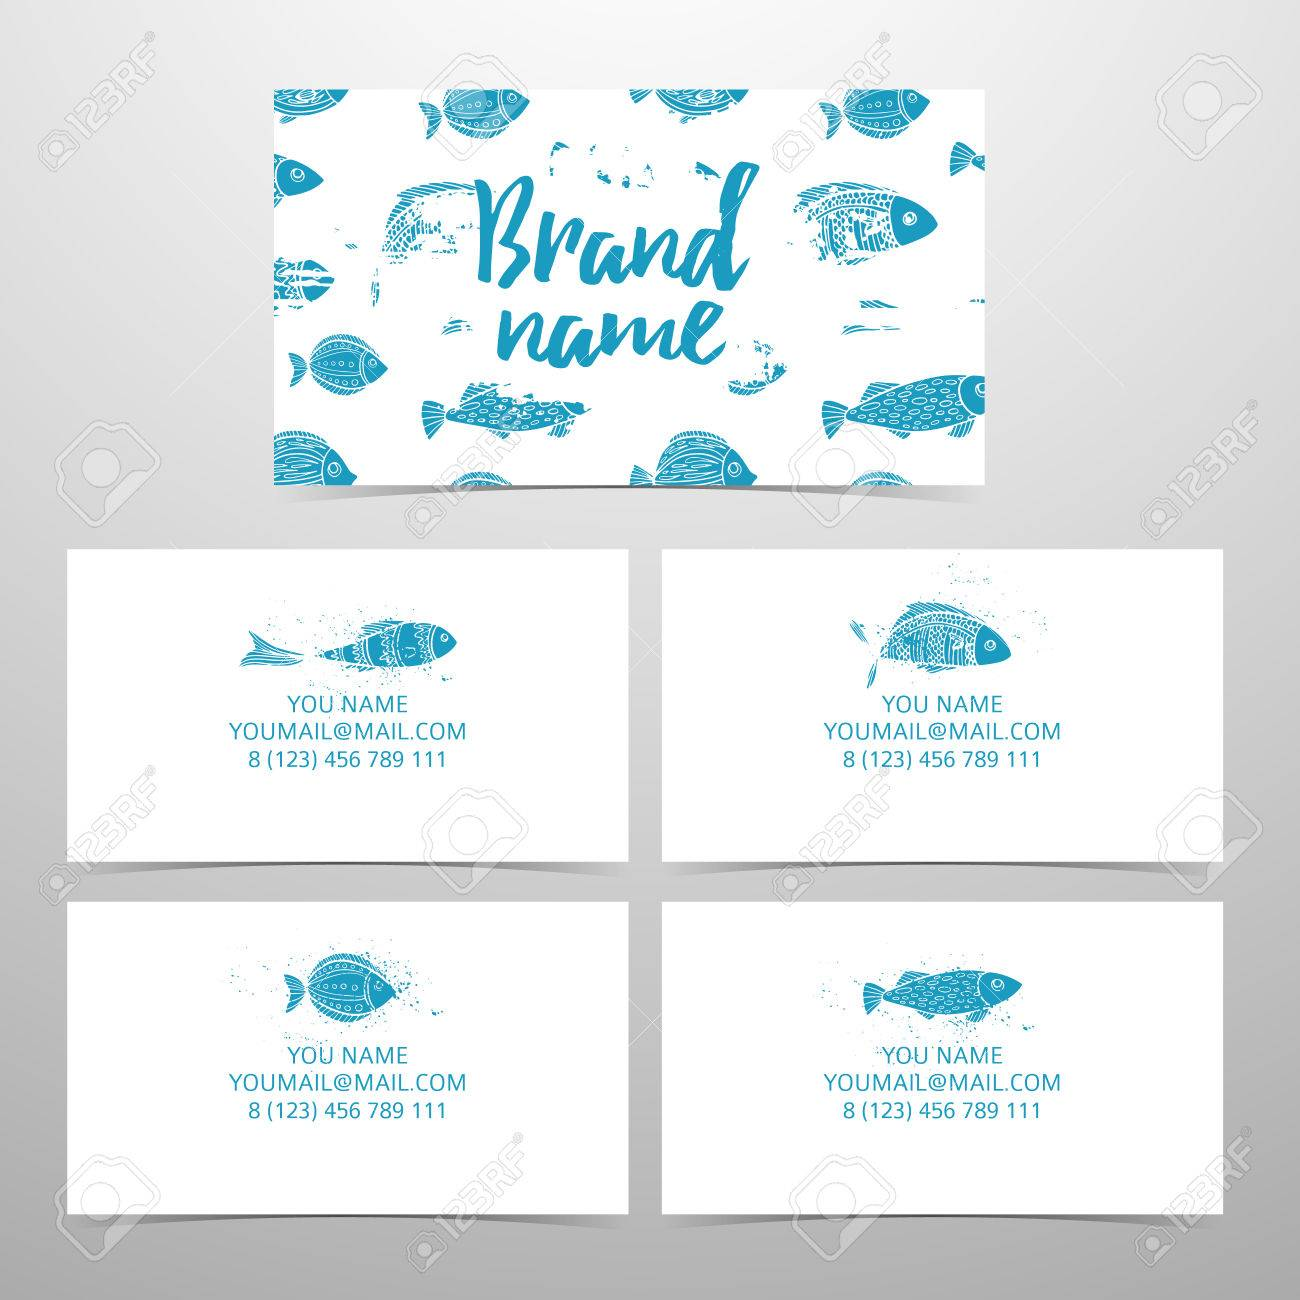 Roller deck for business cards images free business cards beach business cards choice image free business cards set of business cards to corporate identity business magicingreecefo Image collections